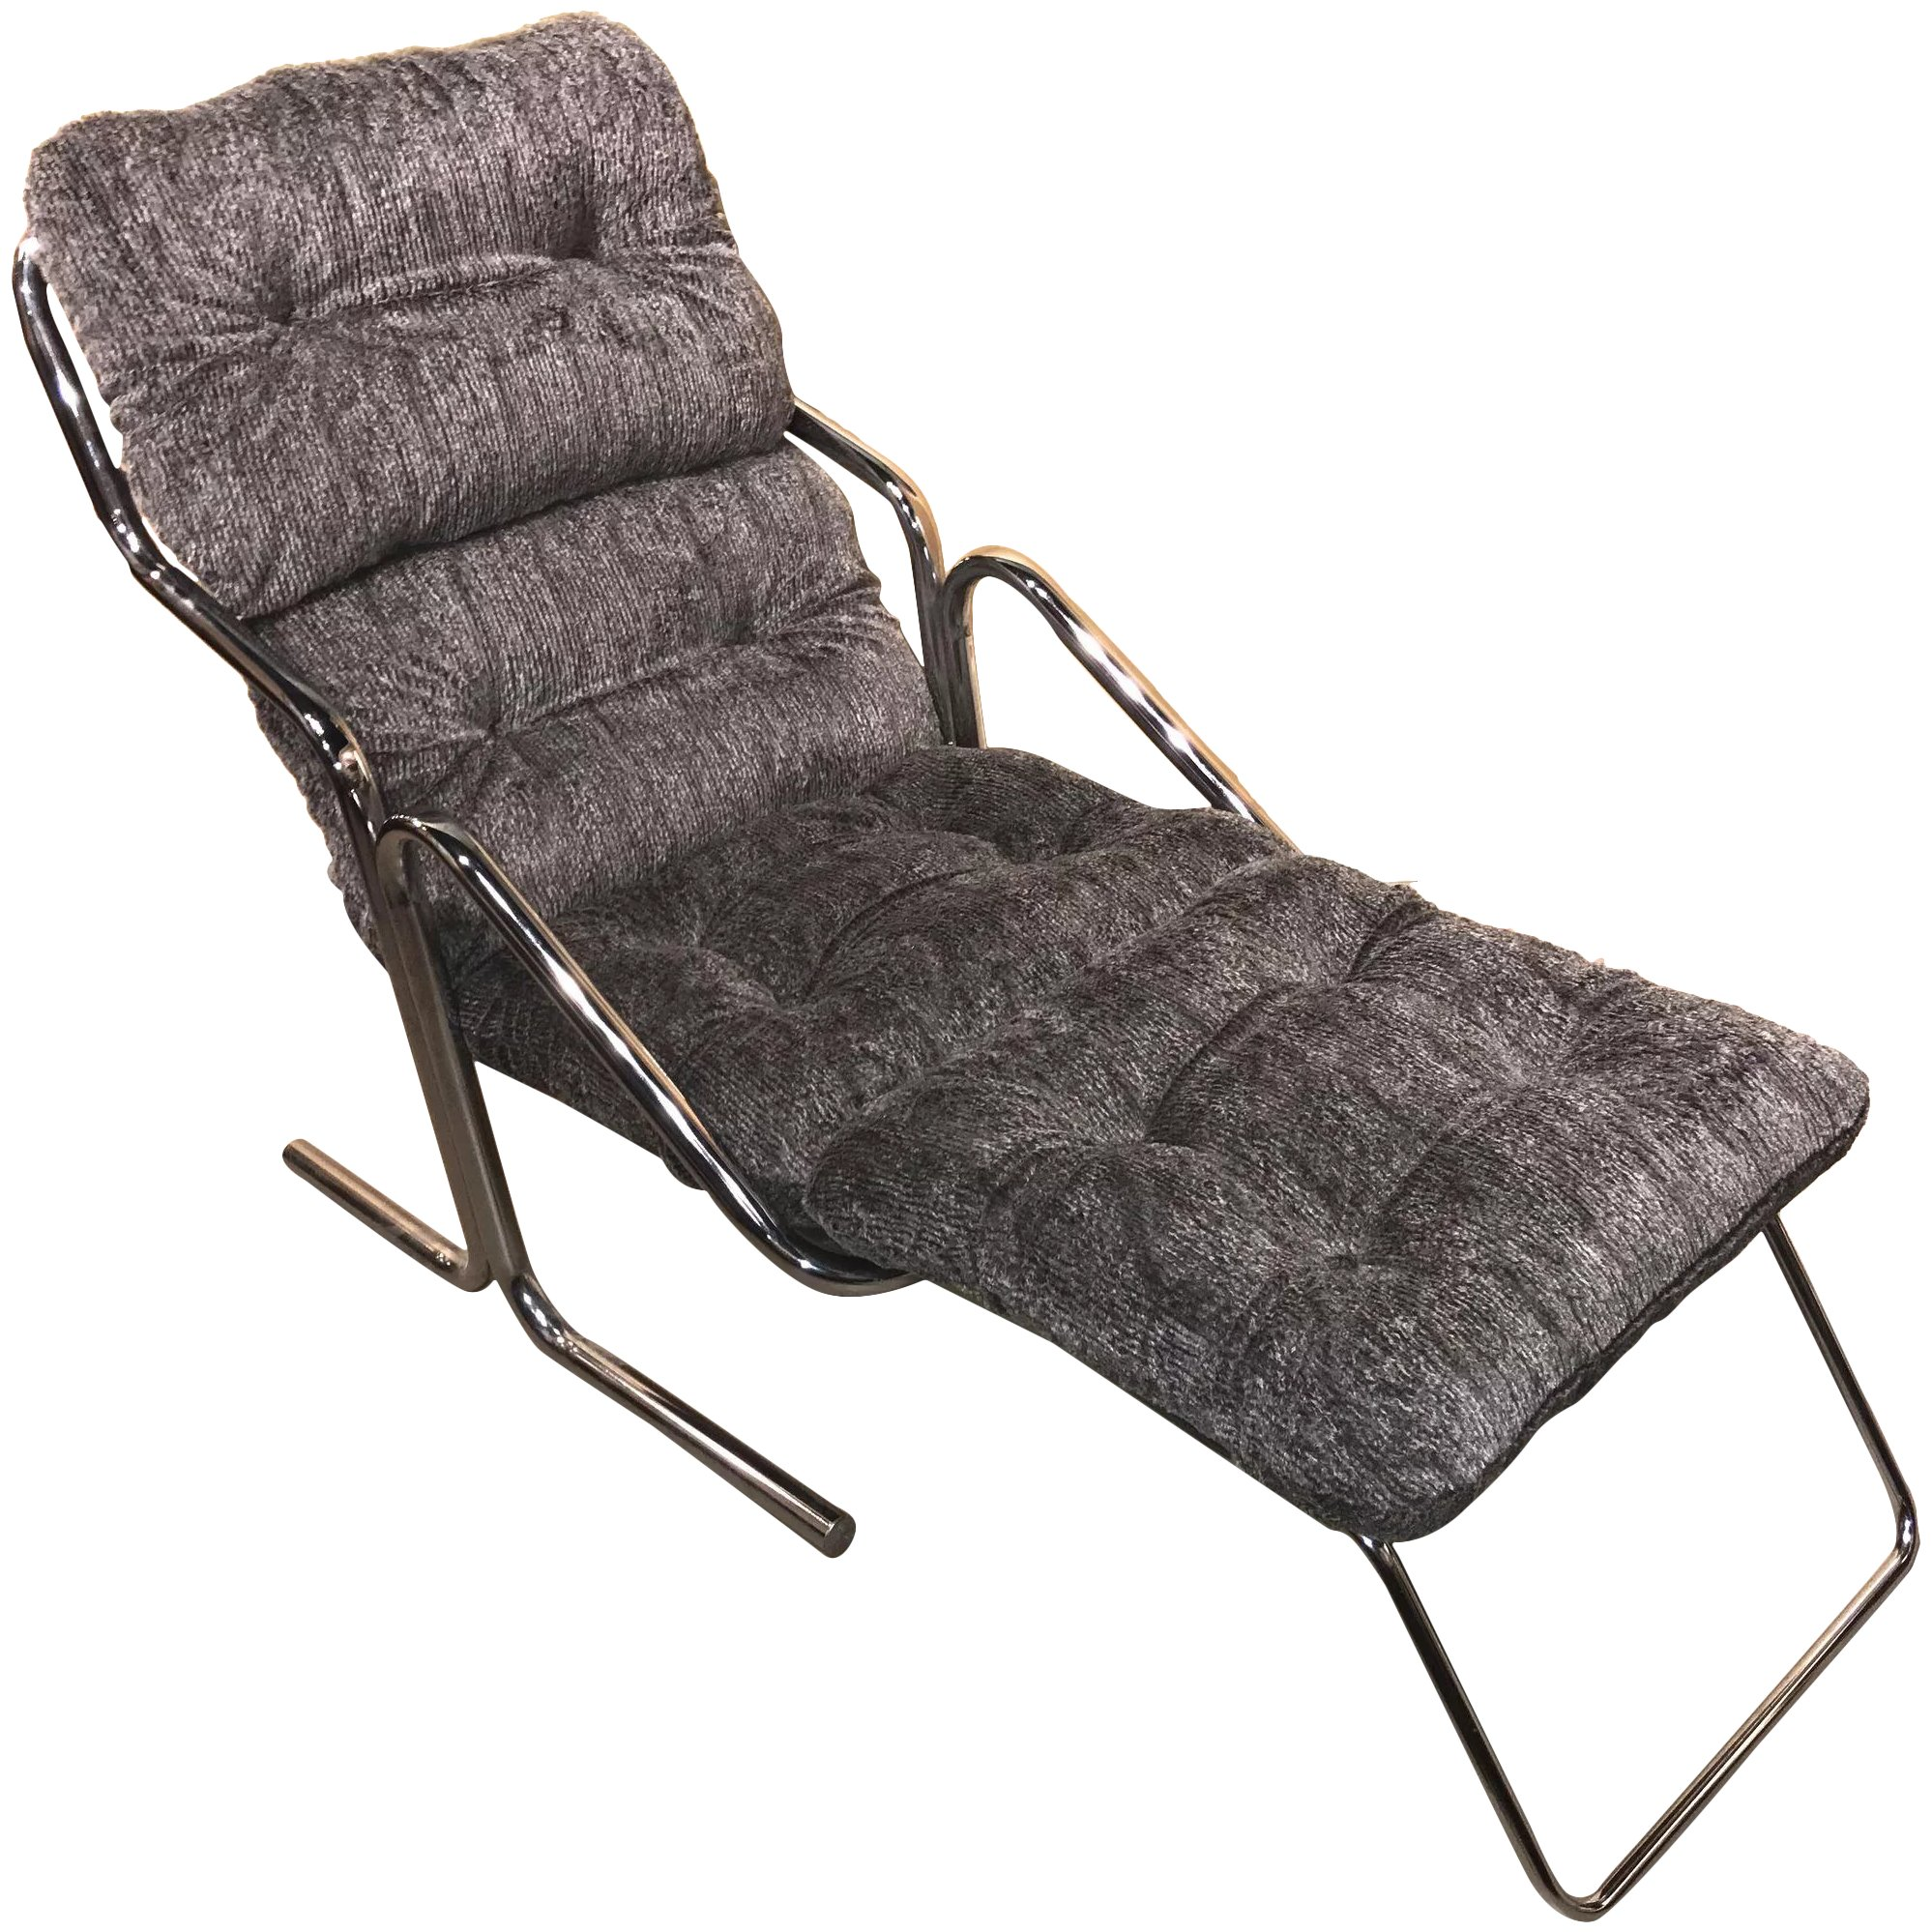 Jerry Johnson Mid Century Arcadia Chrome Lounger Chair With Built In Footrest Ottoman